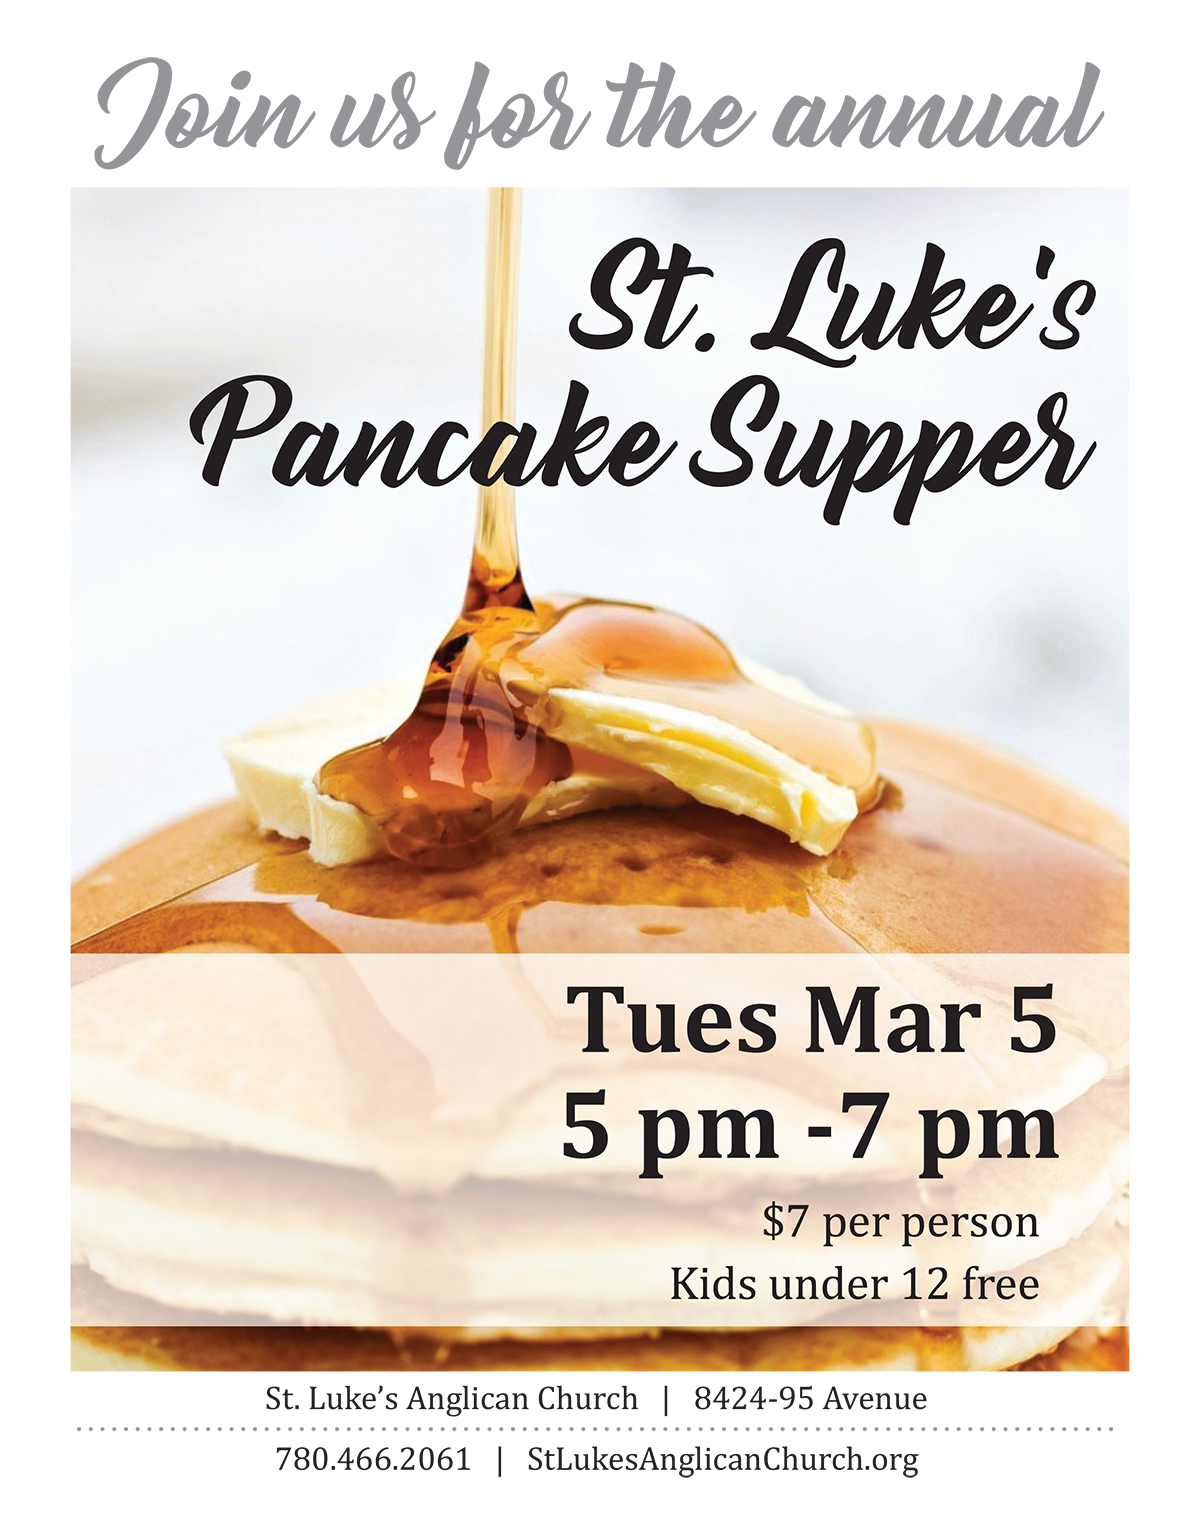 It's Pancake Supper time!!